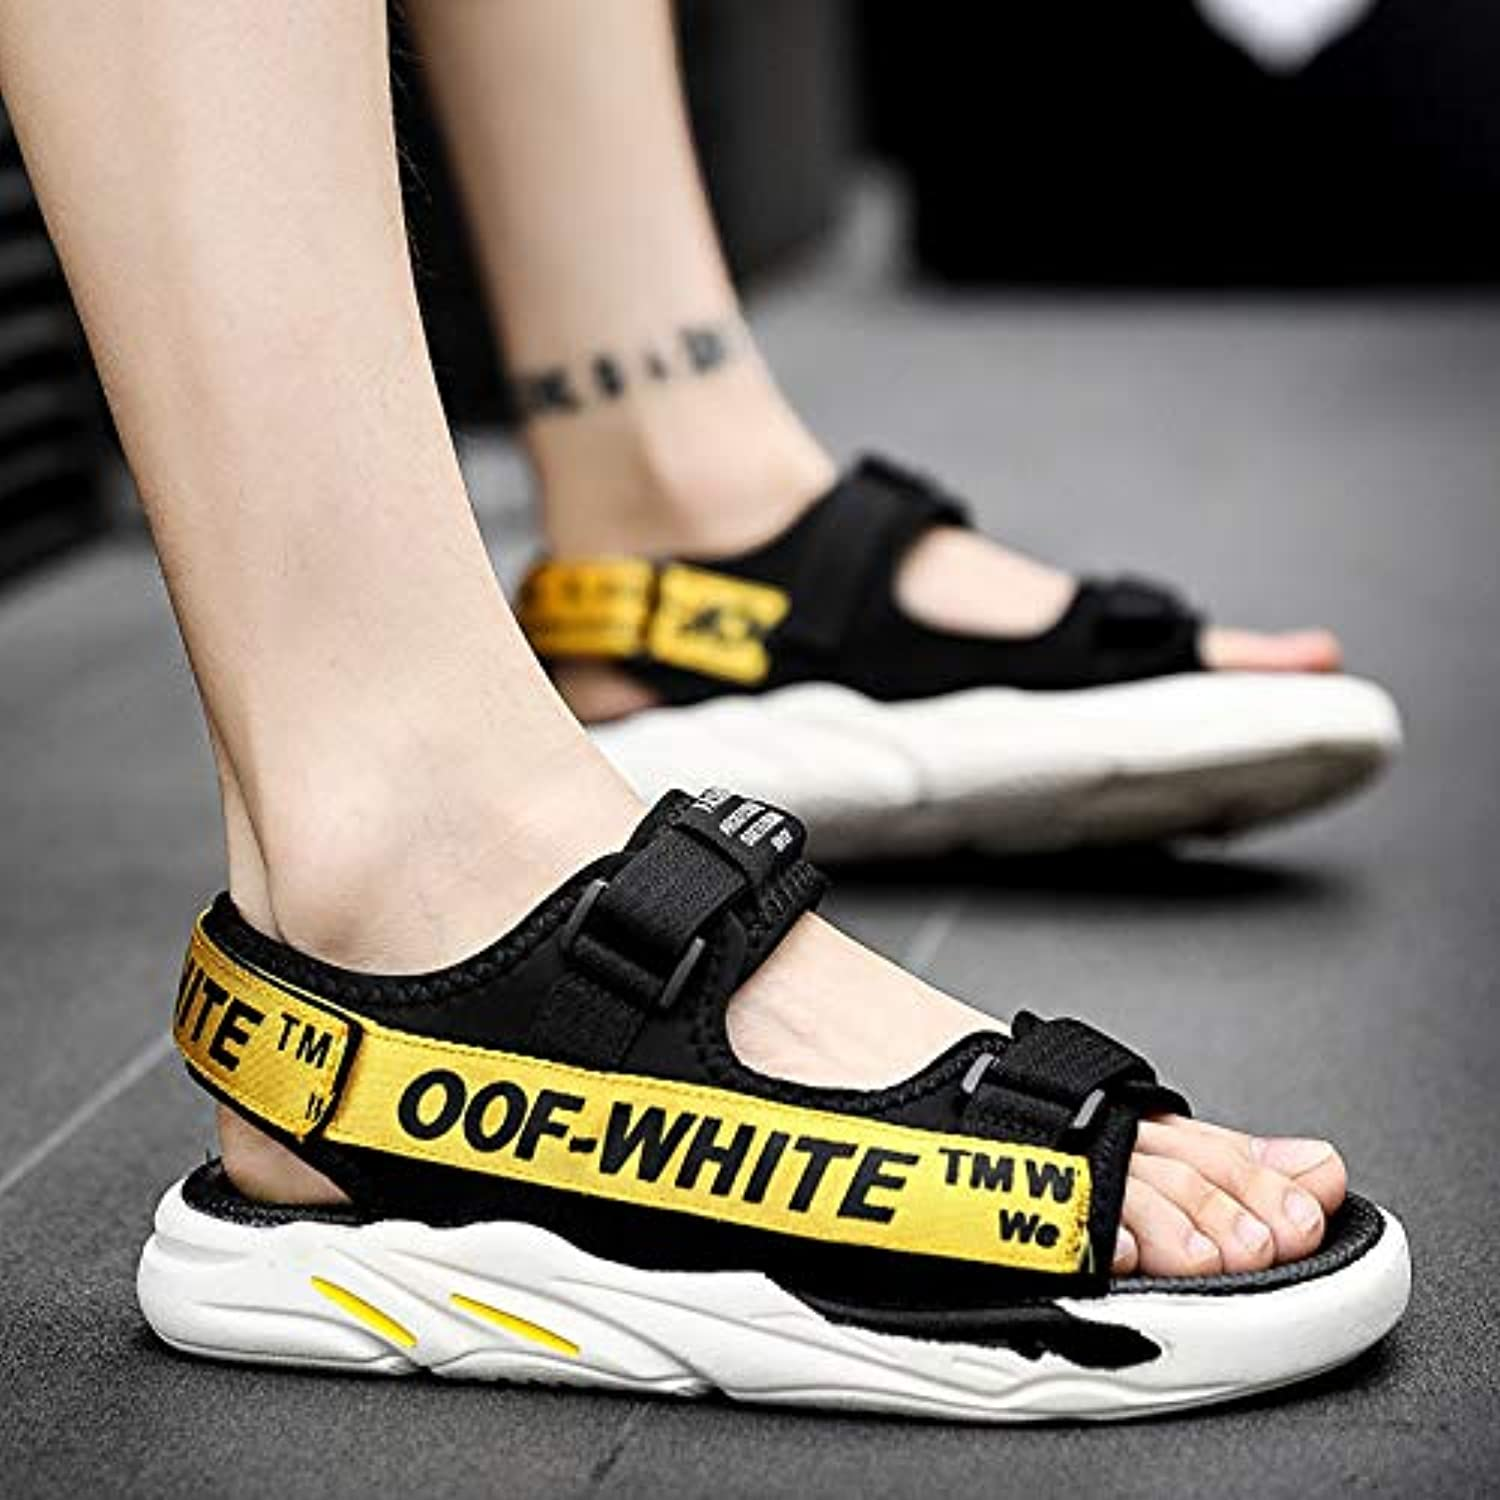 OPPP Water shoes Beach sandals summer fashion wild outdoor river shoes beach casual sandals